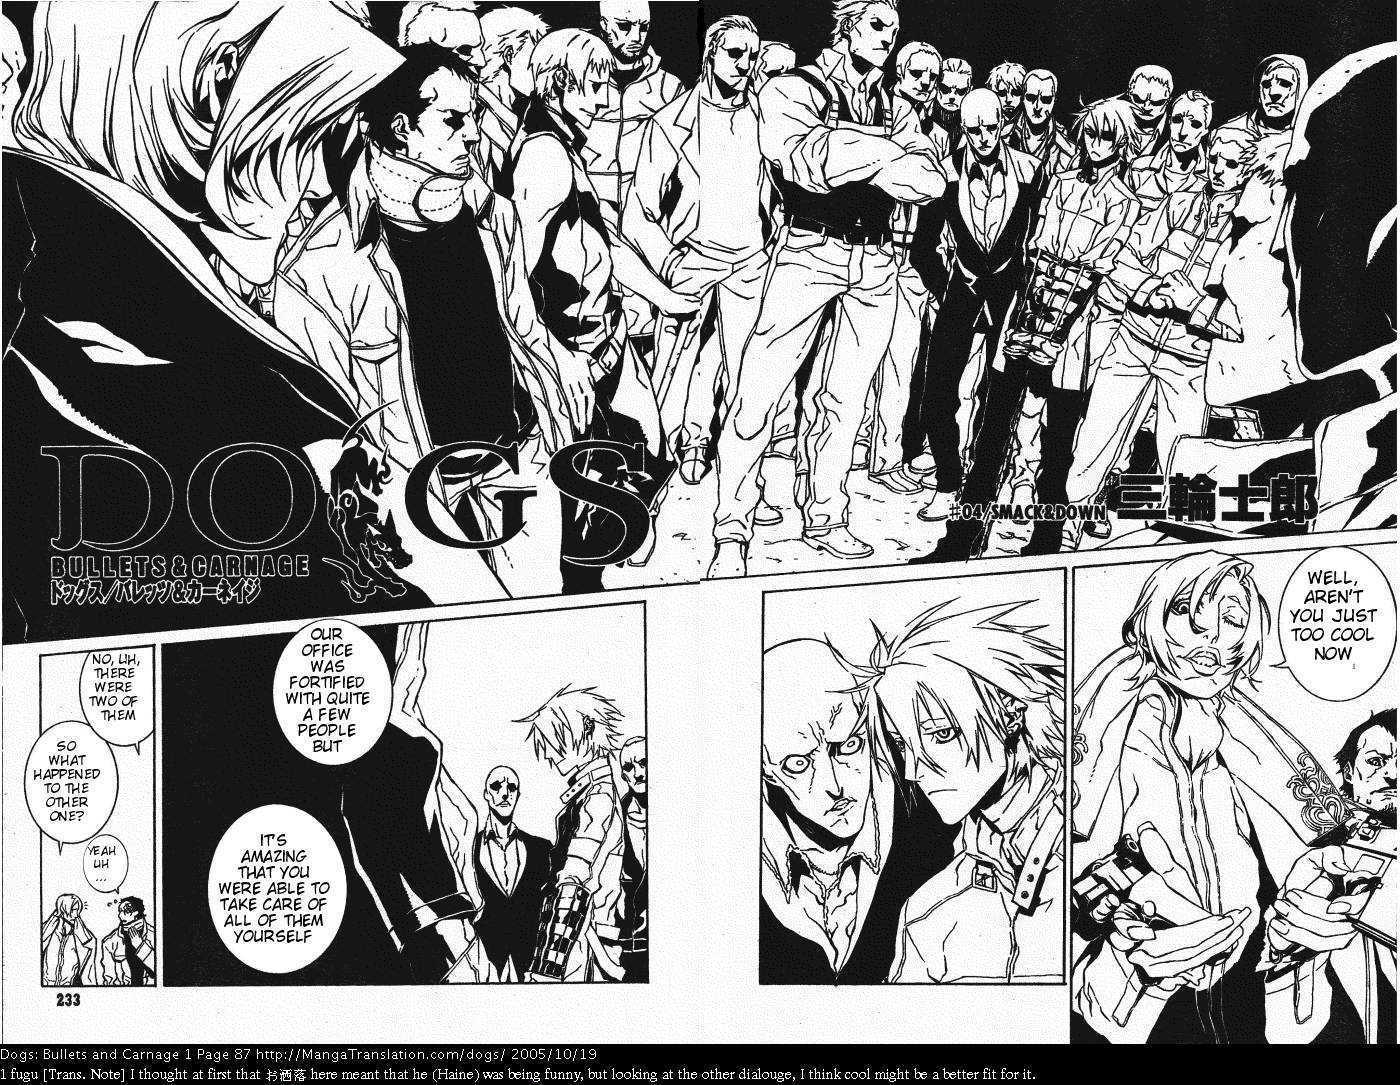 Dogs: Bullets & Carnage 4 Page 2